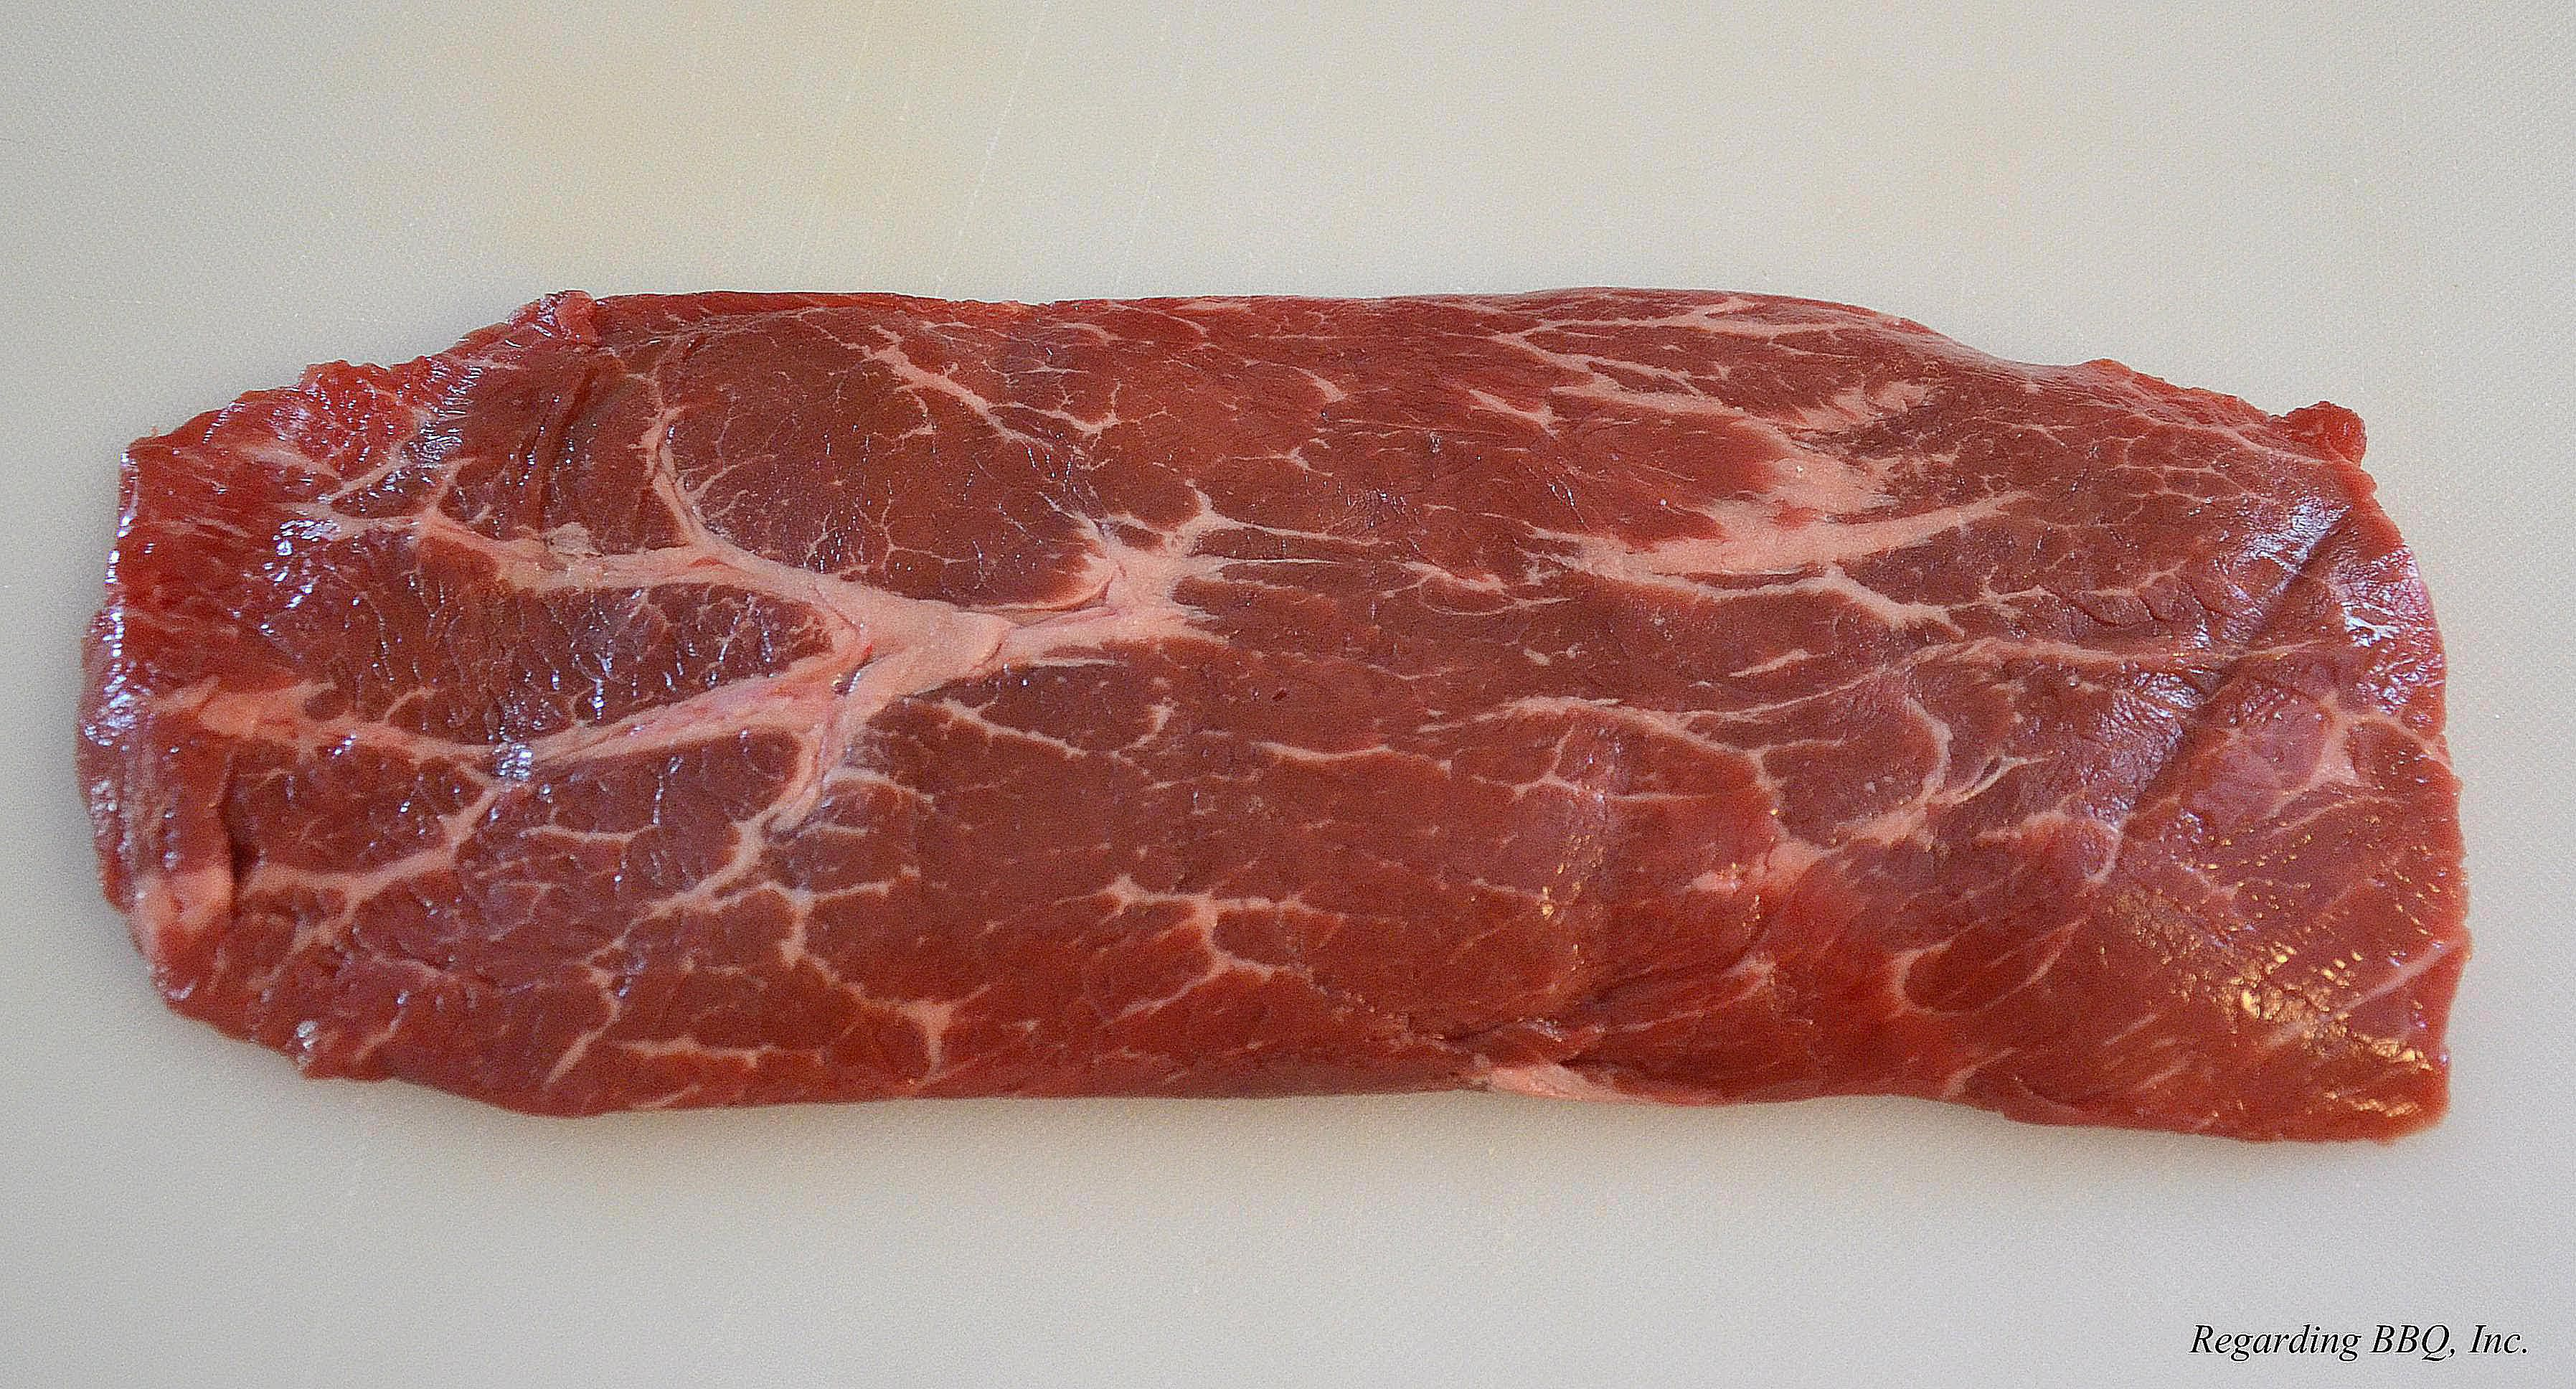 What is a Flat Iron Steak and why is it so perfect for the grill